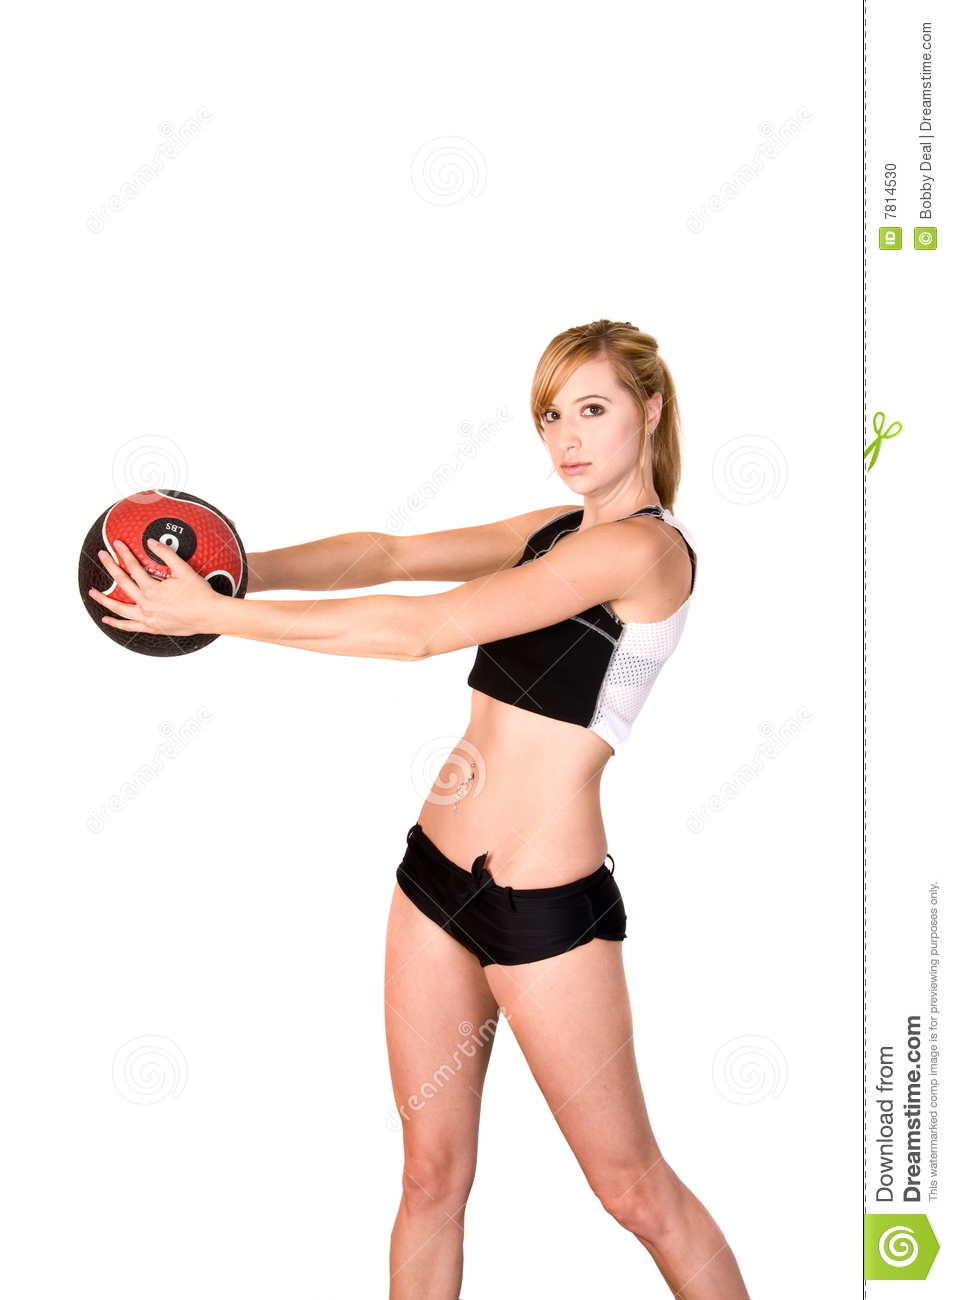 Img further Kerry Sports X in addition S L as well Best Fitness Workout And Calisth further Buffalo Mats Weights. on yoga workout with weights